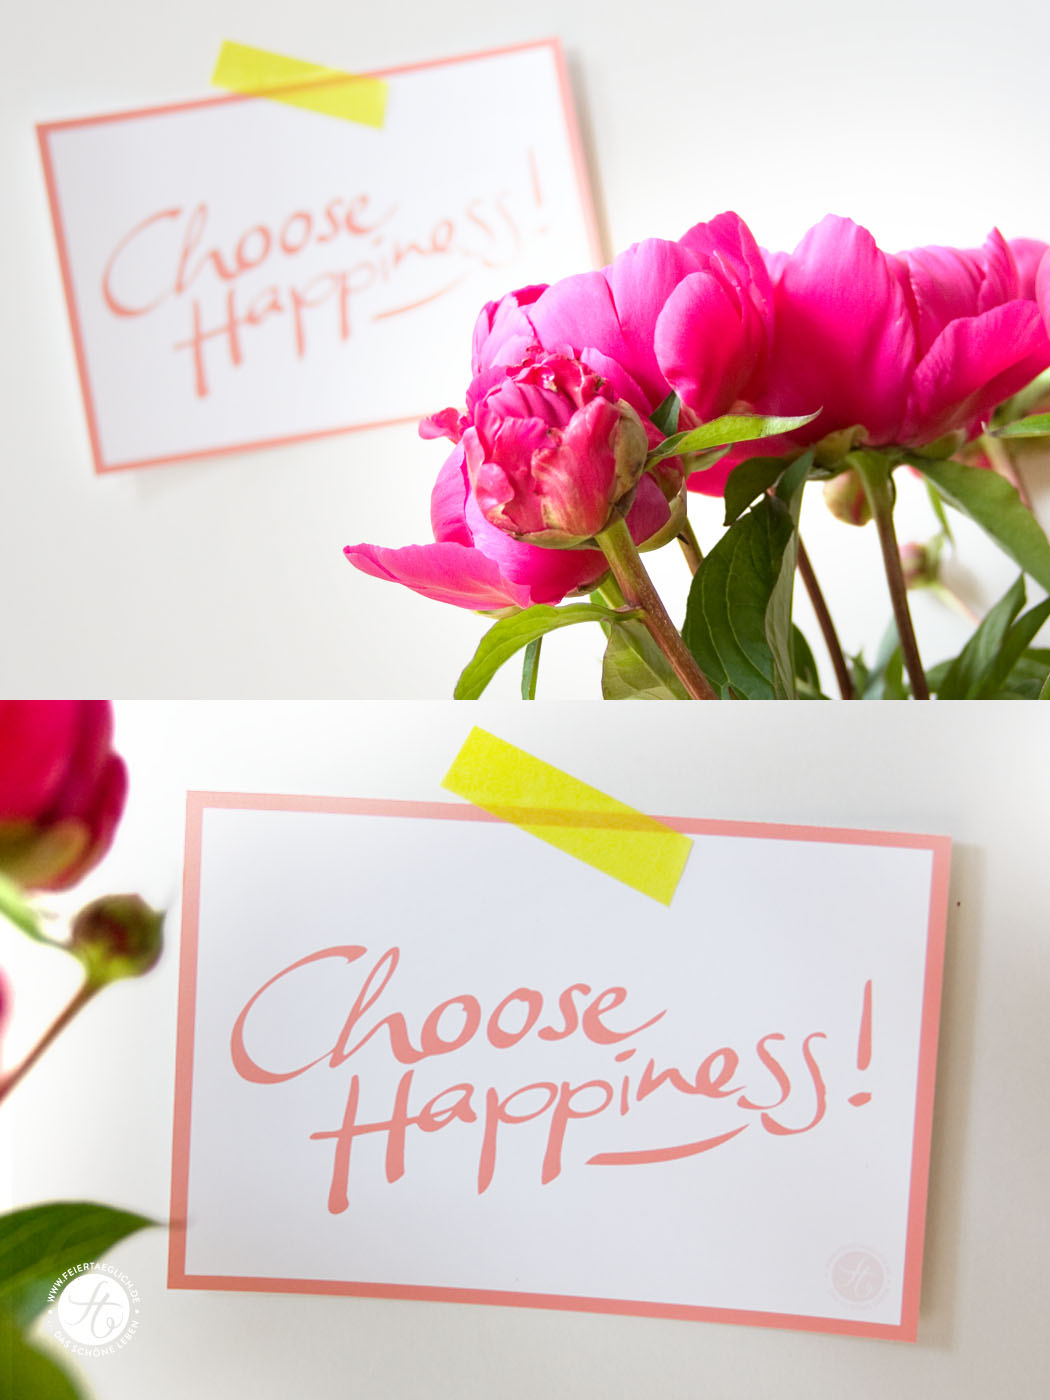 ChooseHappiness_h5